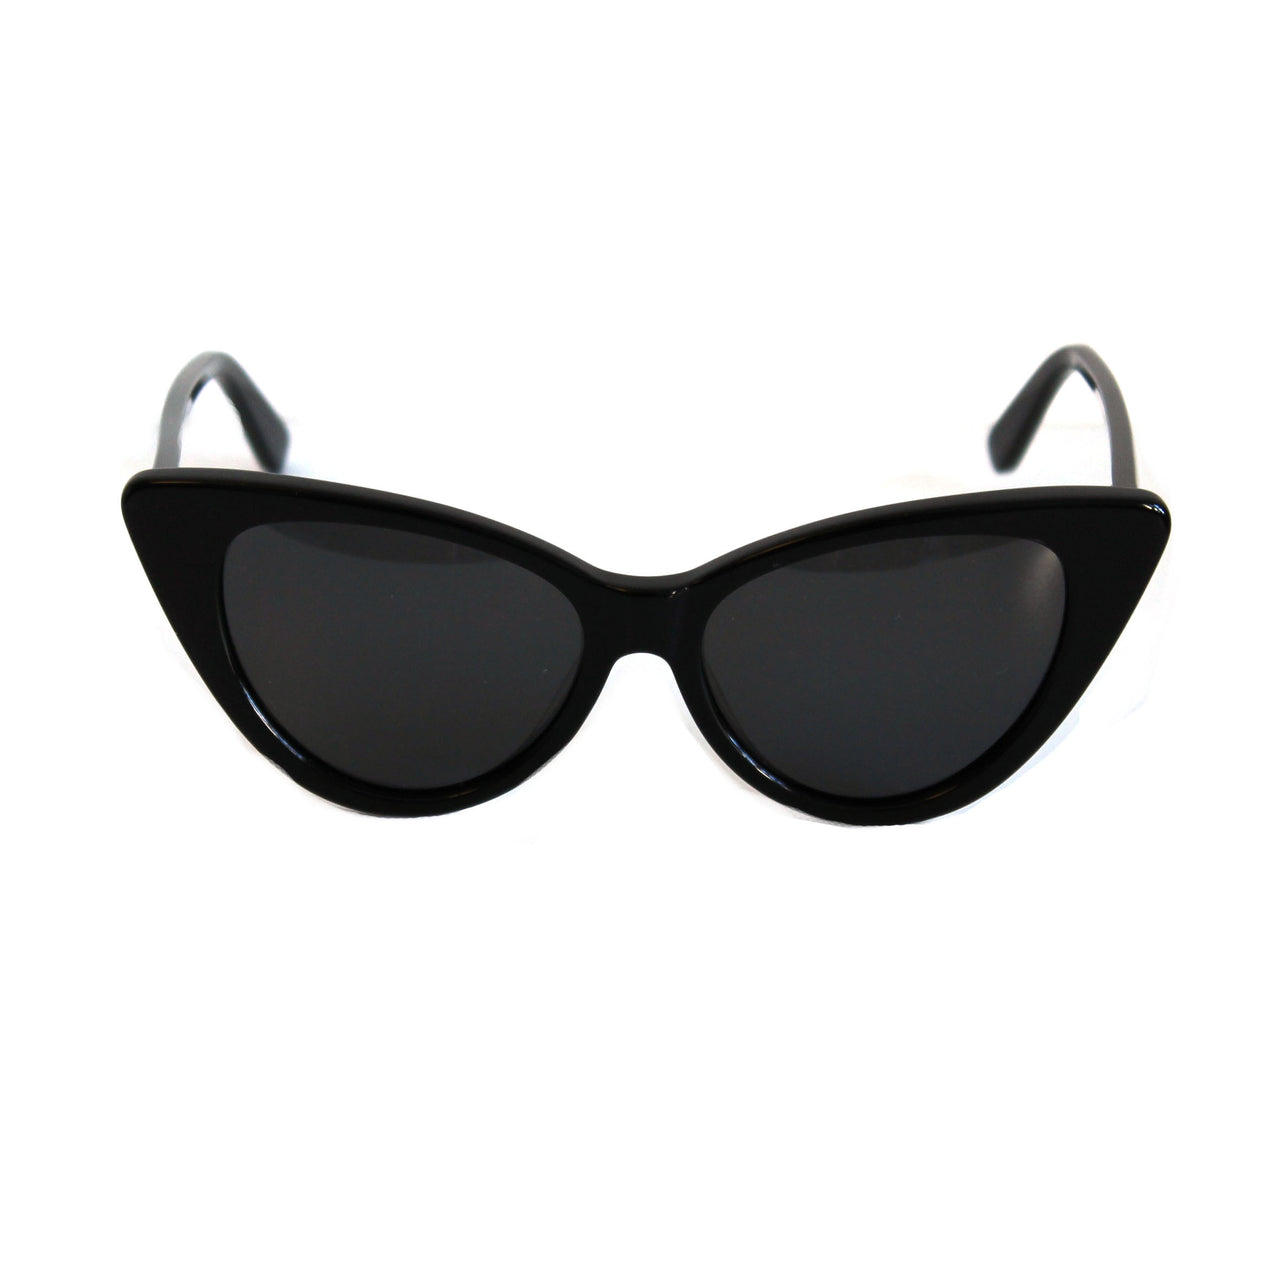 Ava - Sunglasses Black